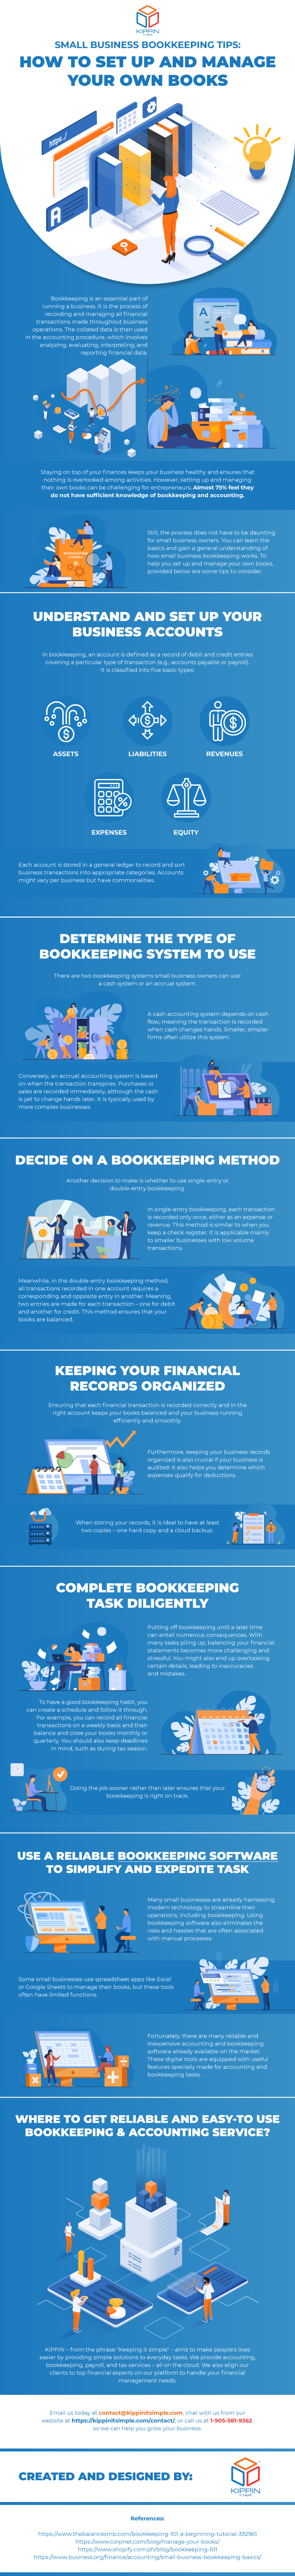 Small Business Bookkeeping Tips: How To Set up and Manage Your Own Books